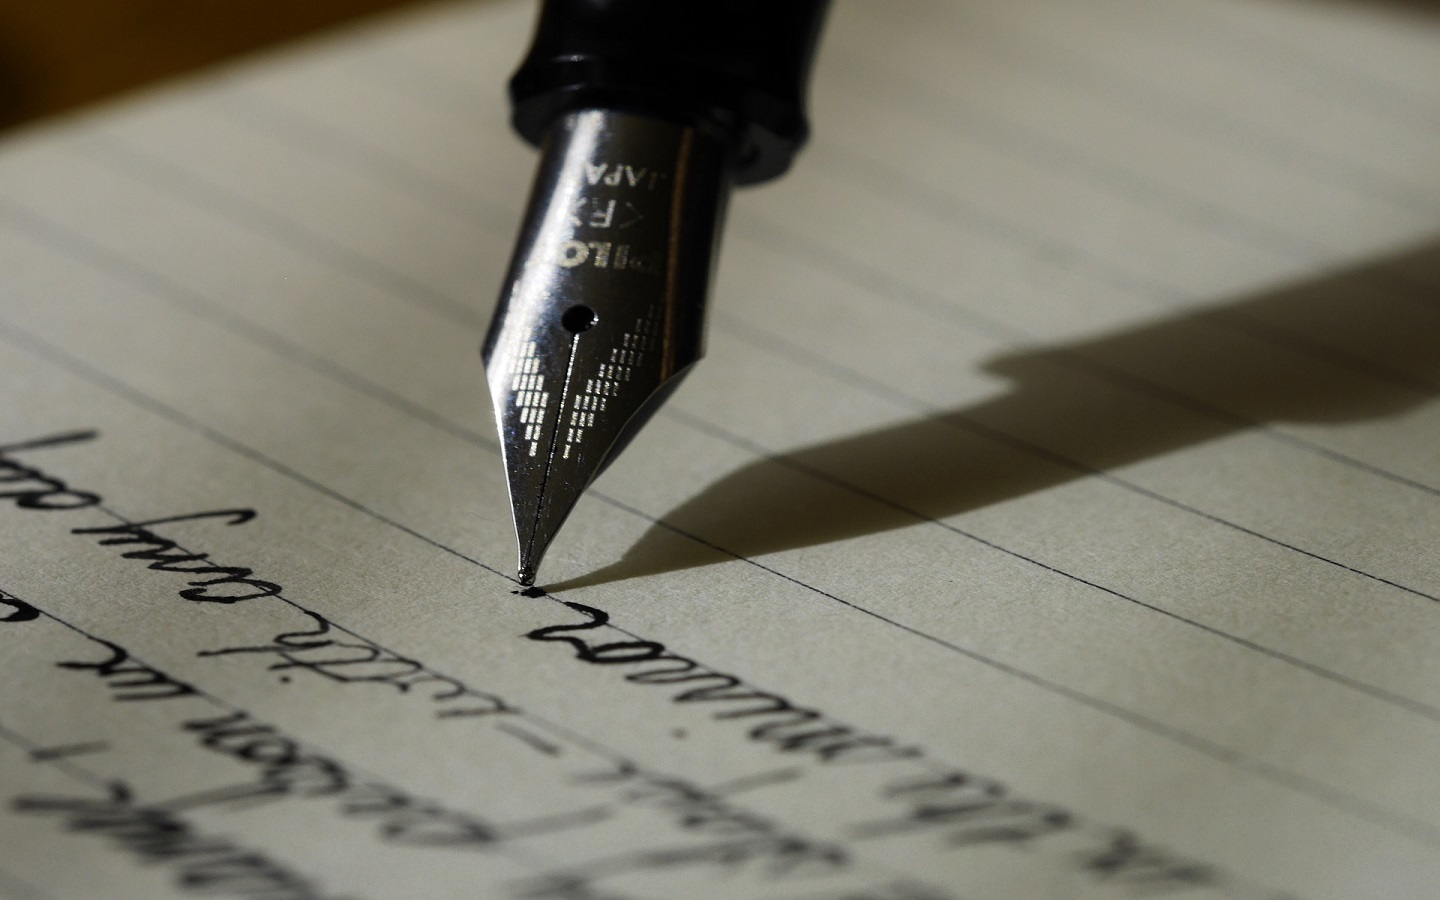 writing on a paper with pen